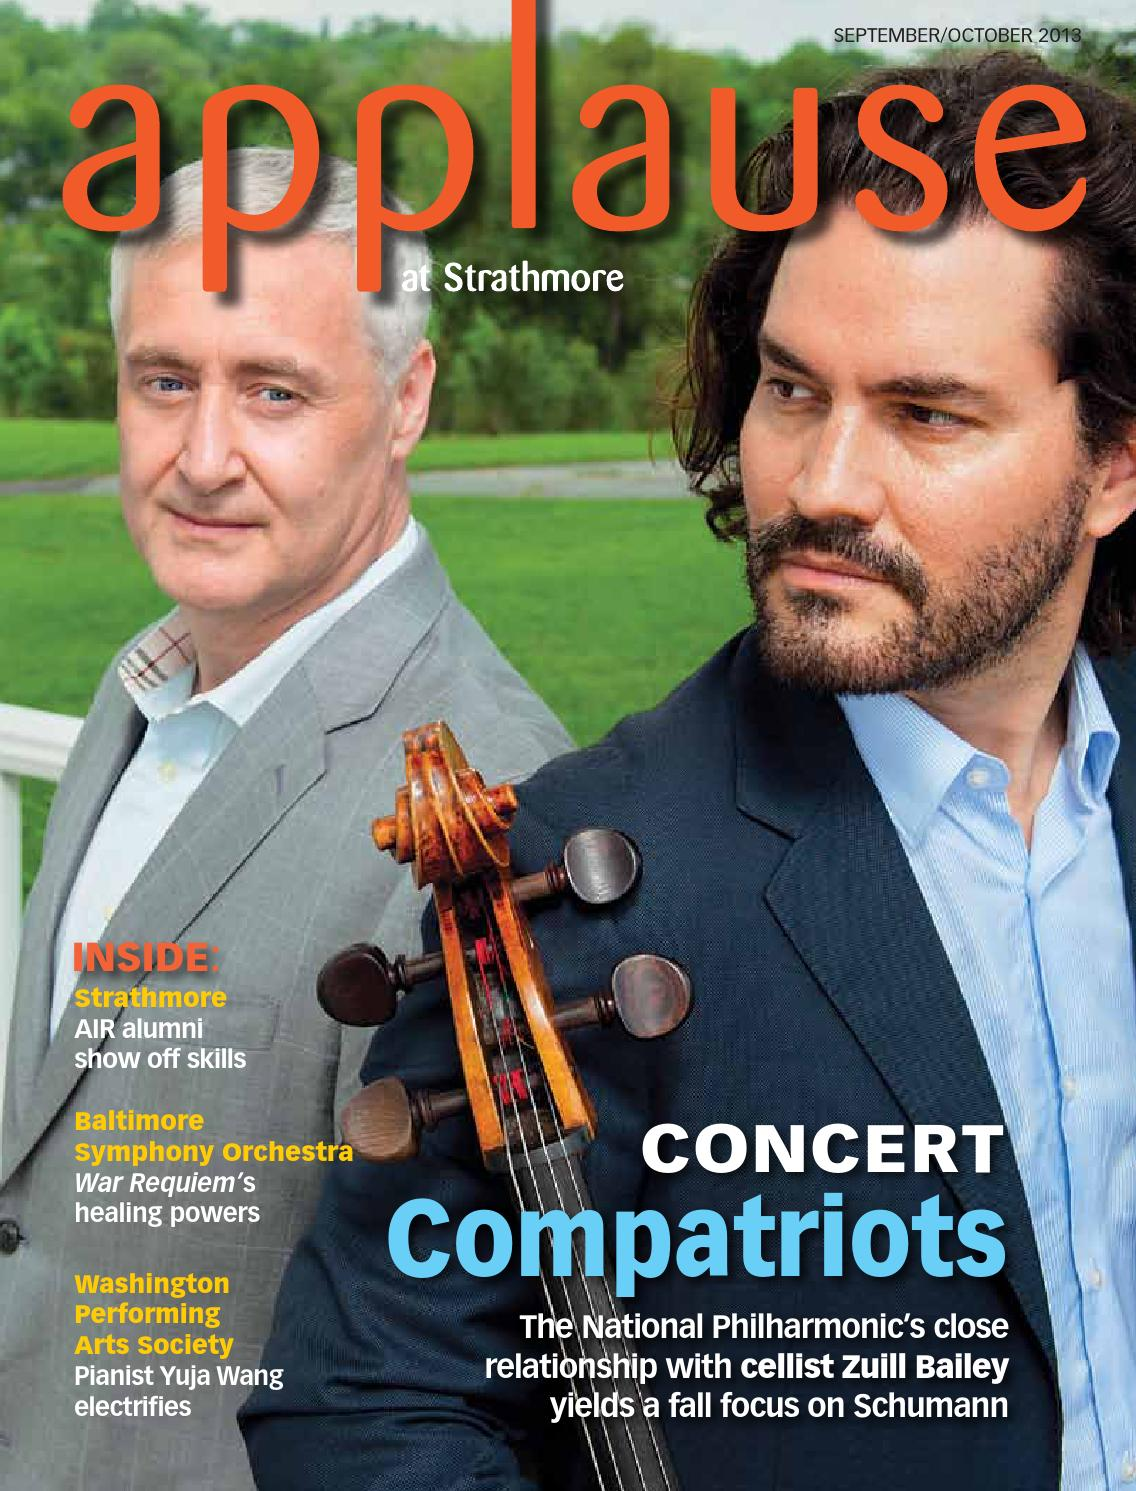 Strathmore Applause Septoct 2013 By Strathmore Issuu